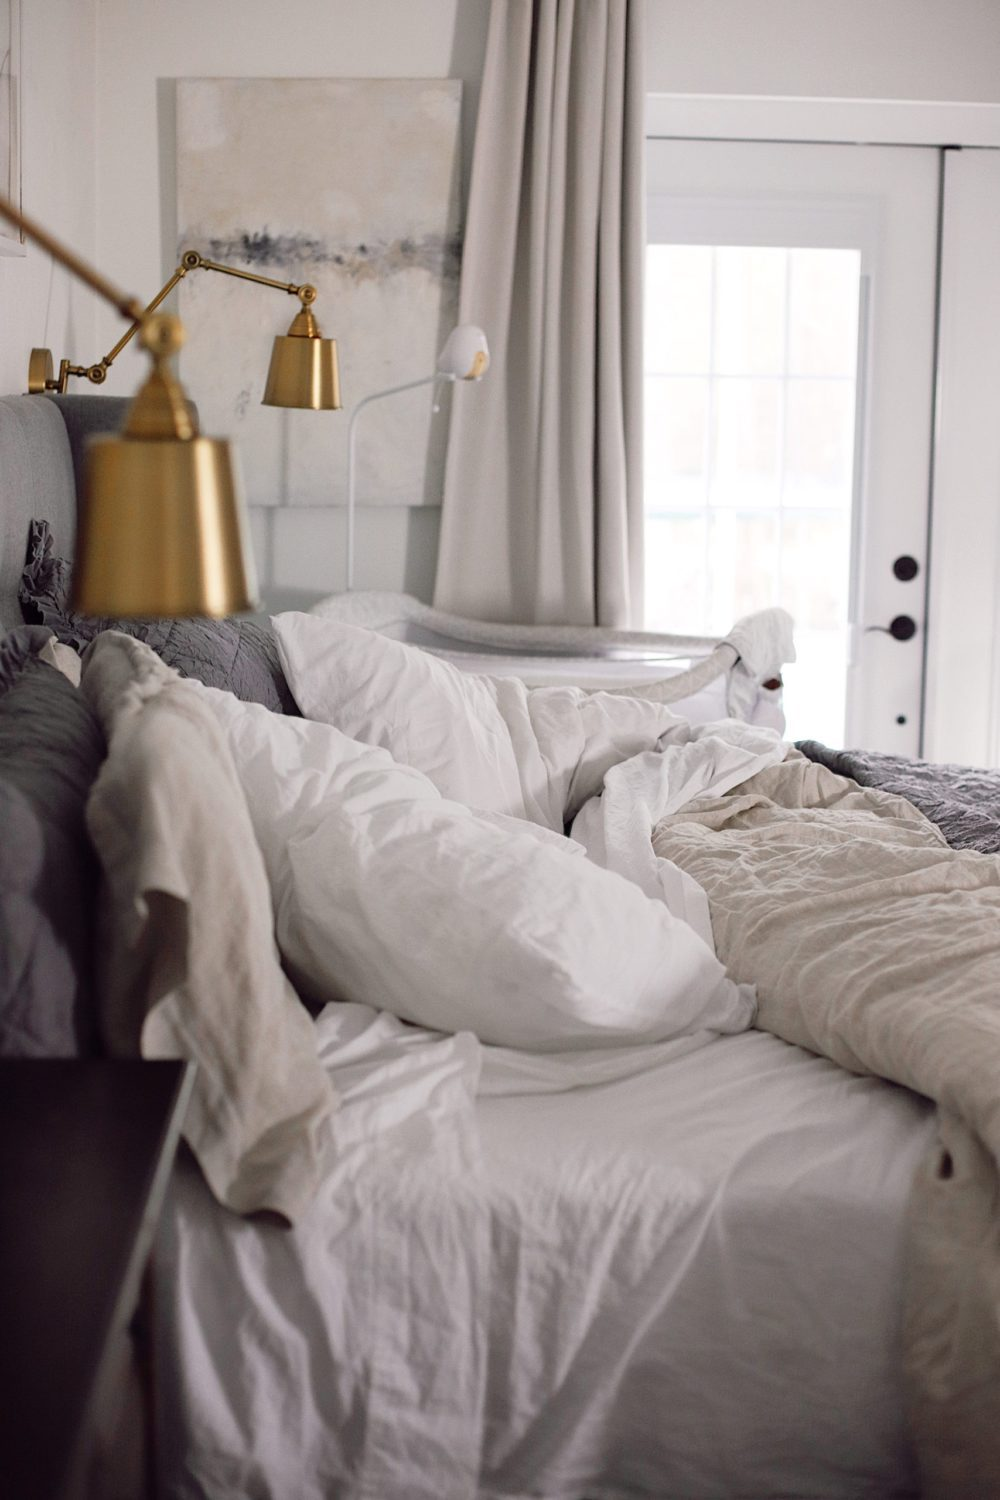 7 Steps to Create a Cozy, Dream Bed You Won't Want to Leave | Best Baby Monitor by popular Florida motherhood blog, Fresh Mommy Blog: image of a unmade bed next to a bassinet.